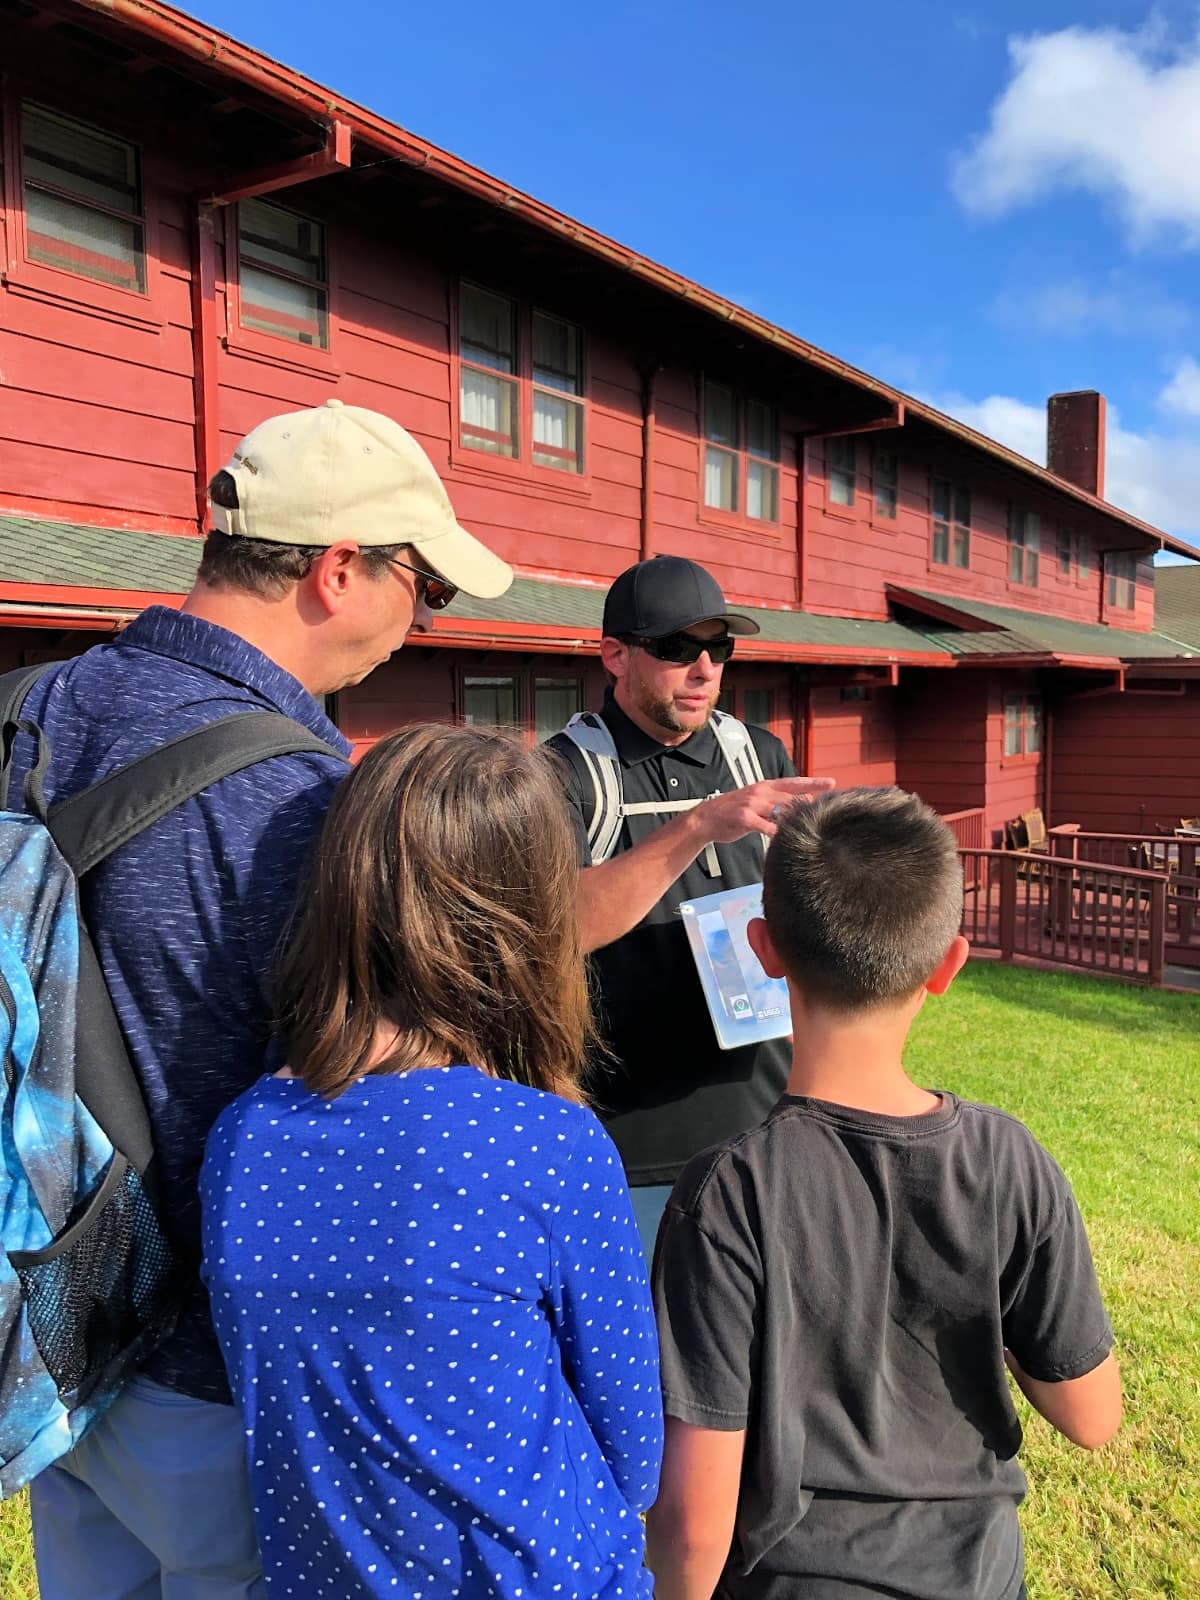 Our guided walking tour of Hawaii Volcanoes National Park with kids